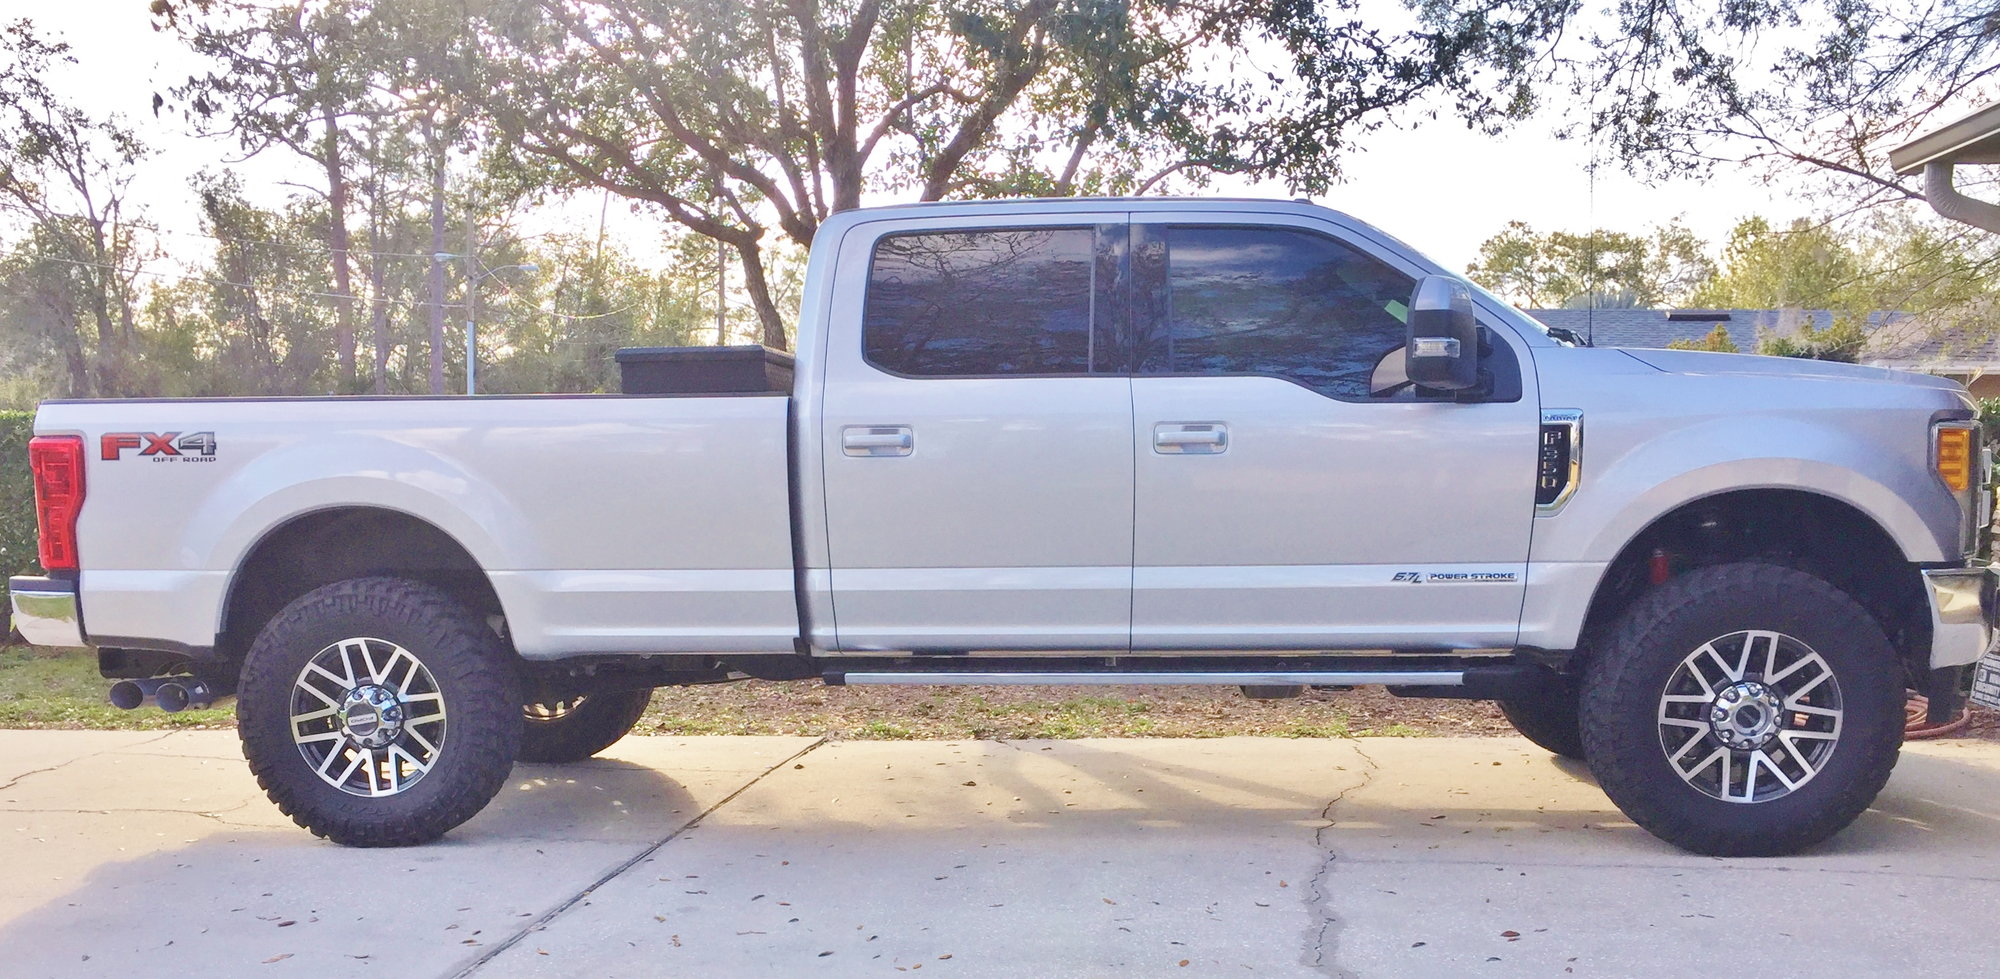 37s on stock rims - Ford Truck Enthusiasts Forums